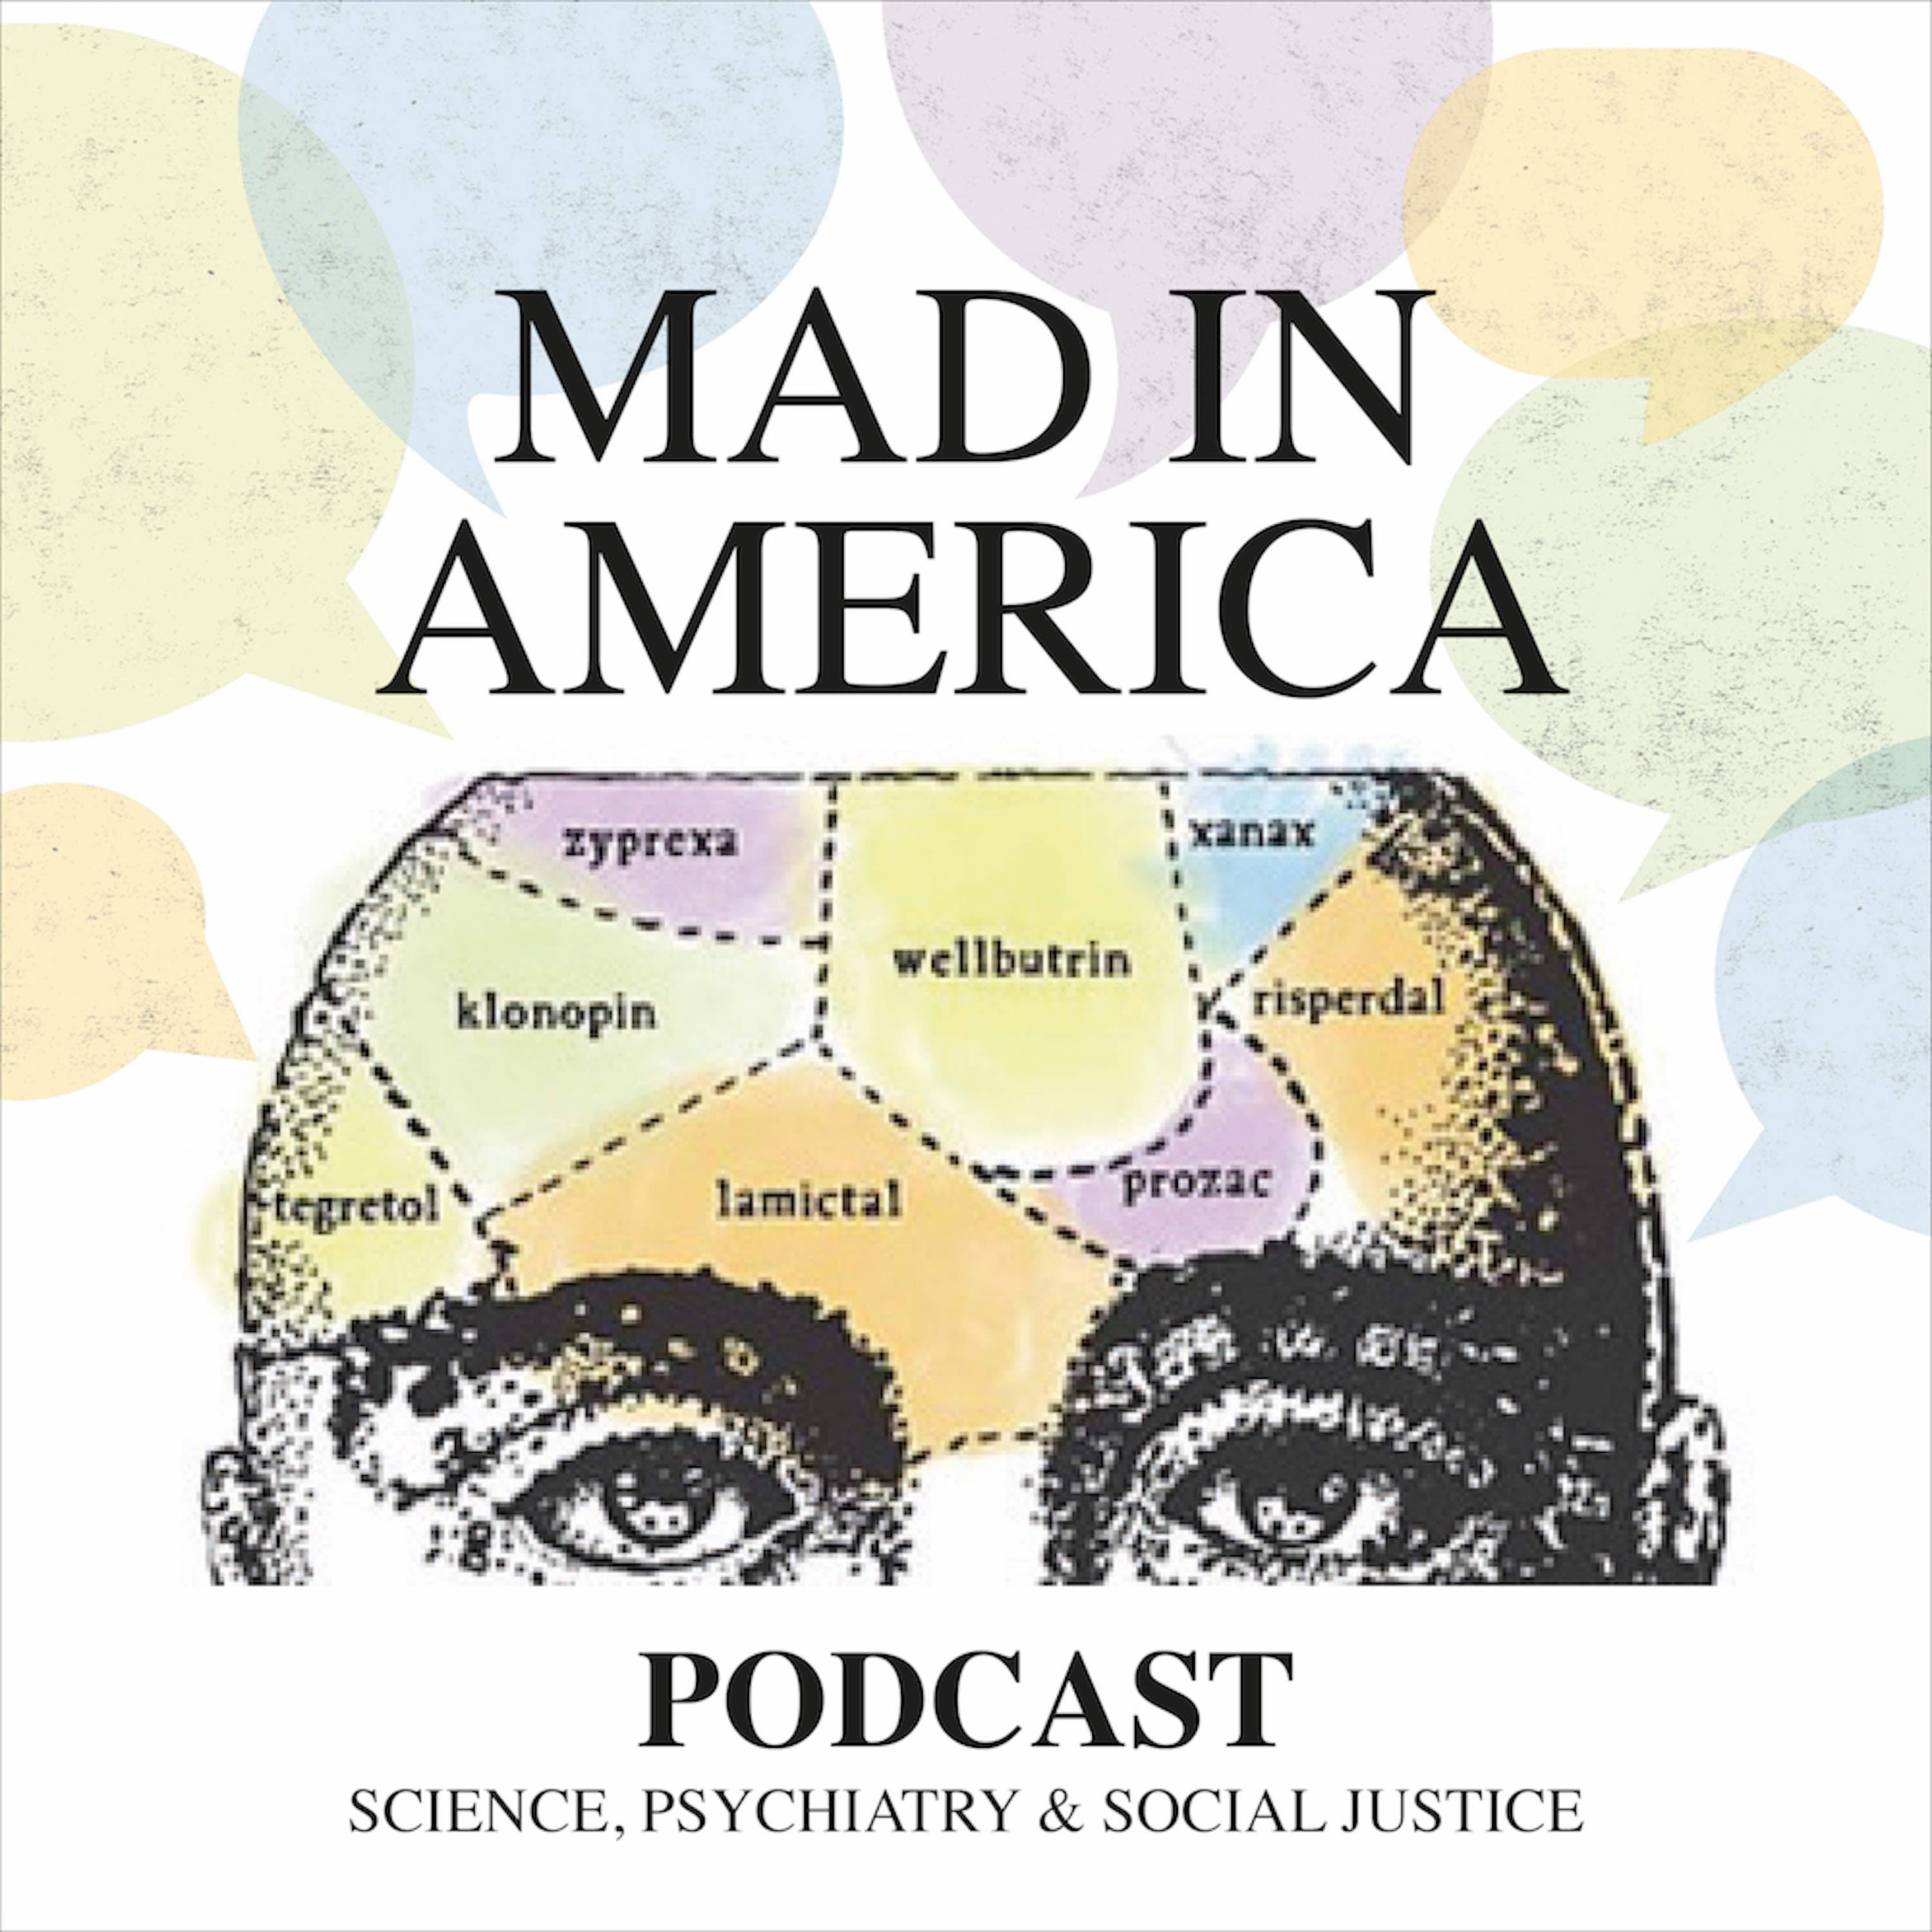 Mad in America: Rethinking Mental Health - Irving Kirsch - The Placebo Effect and What It Tells Us About Antidepressant Efficacy